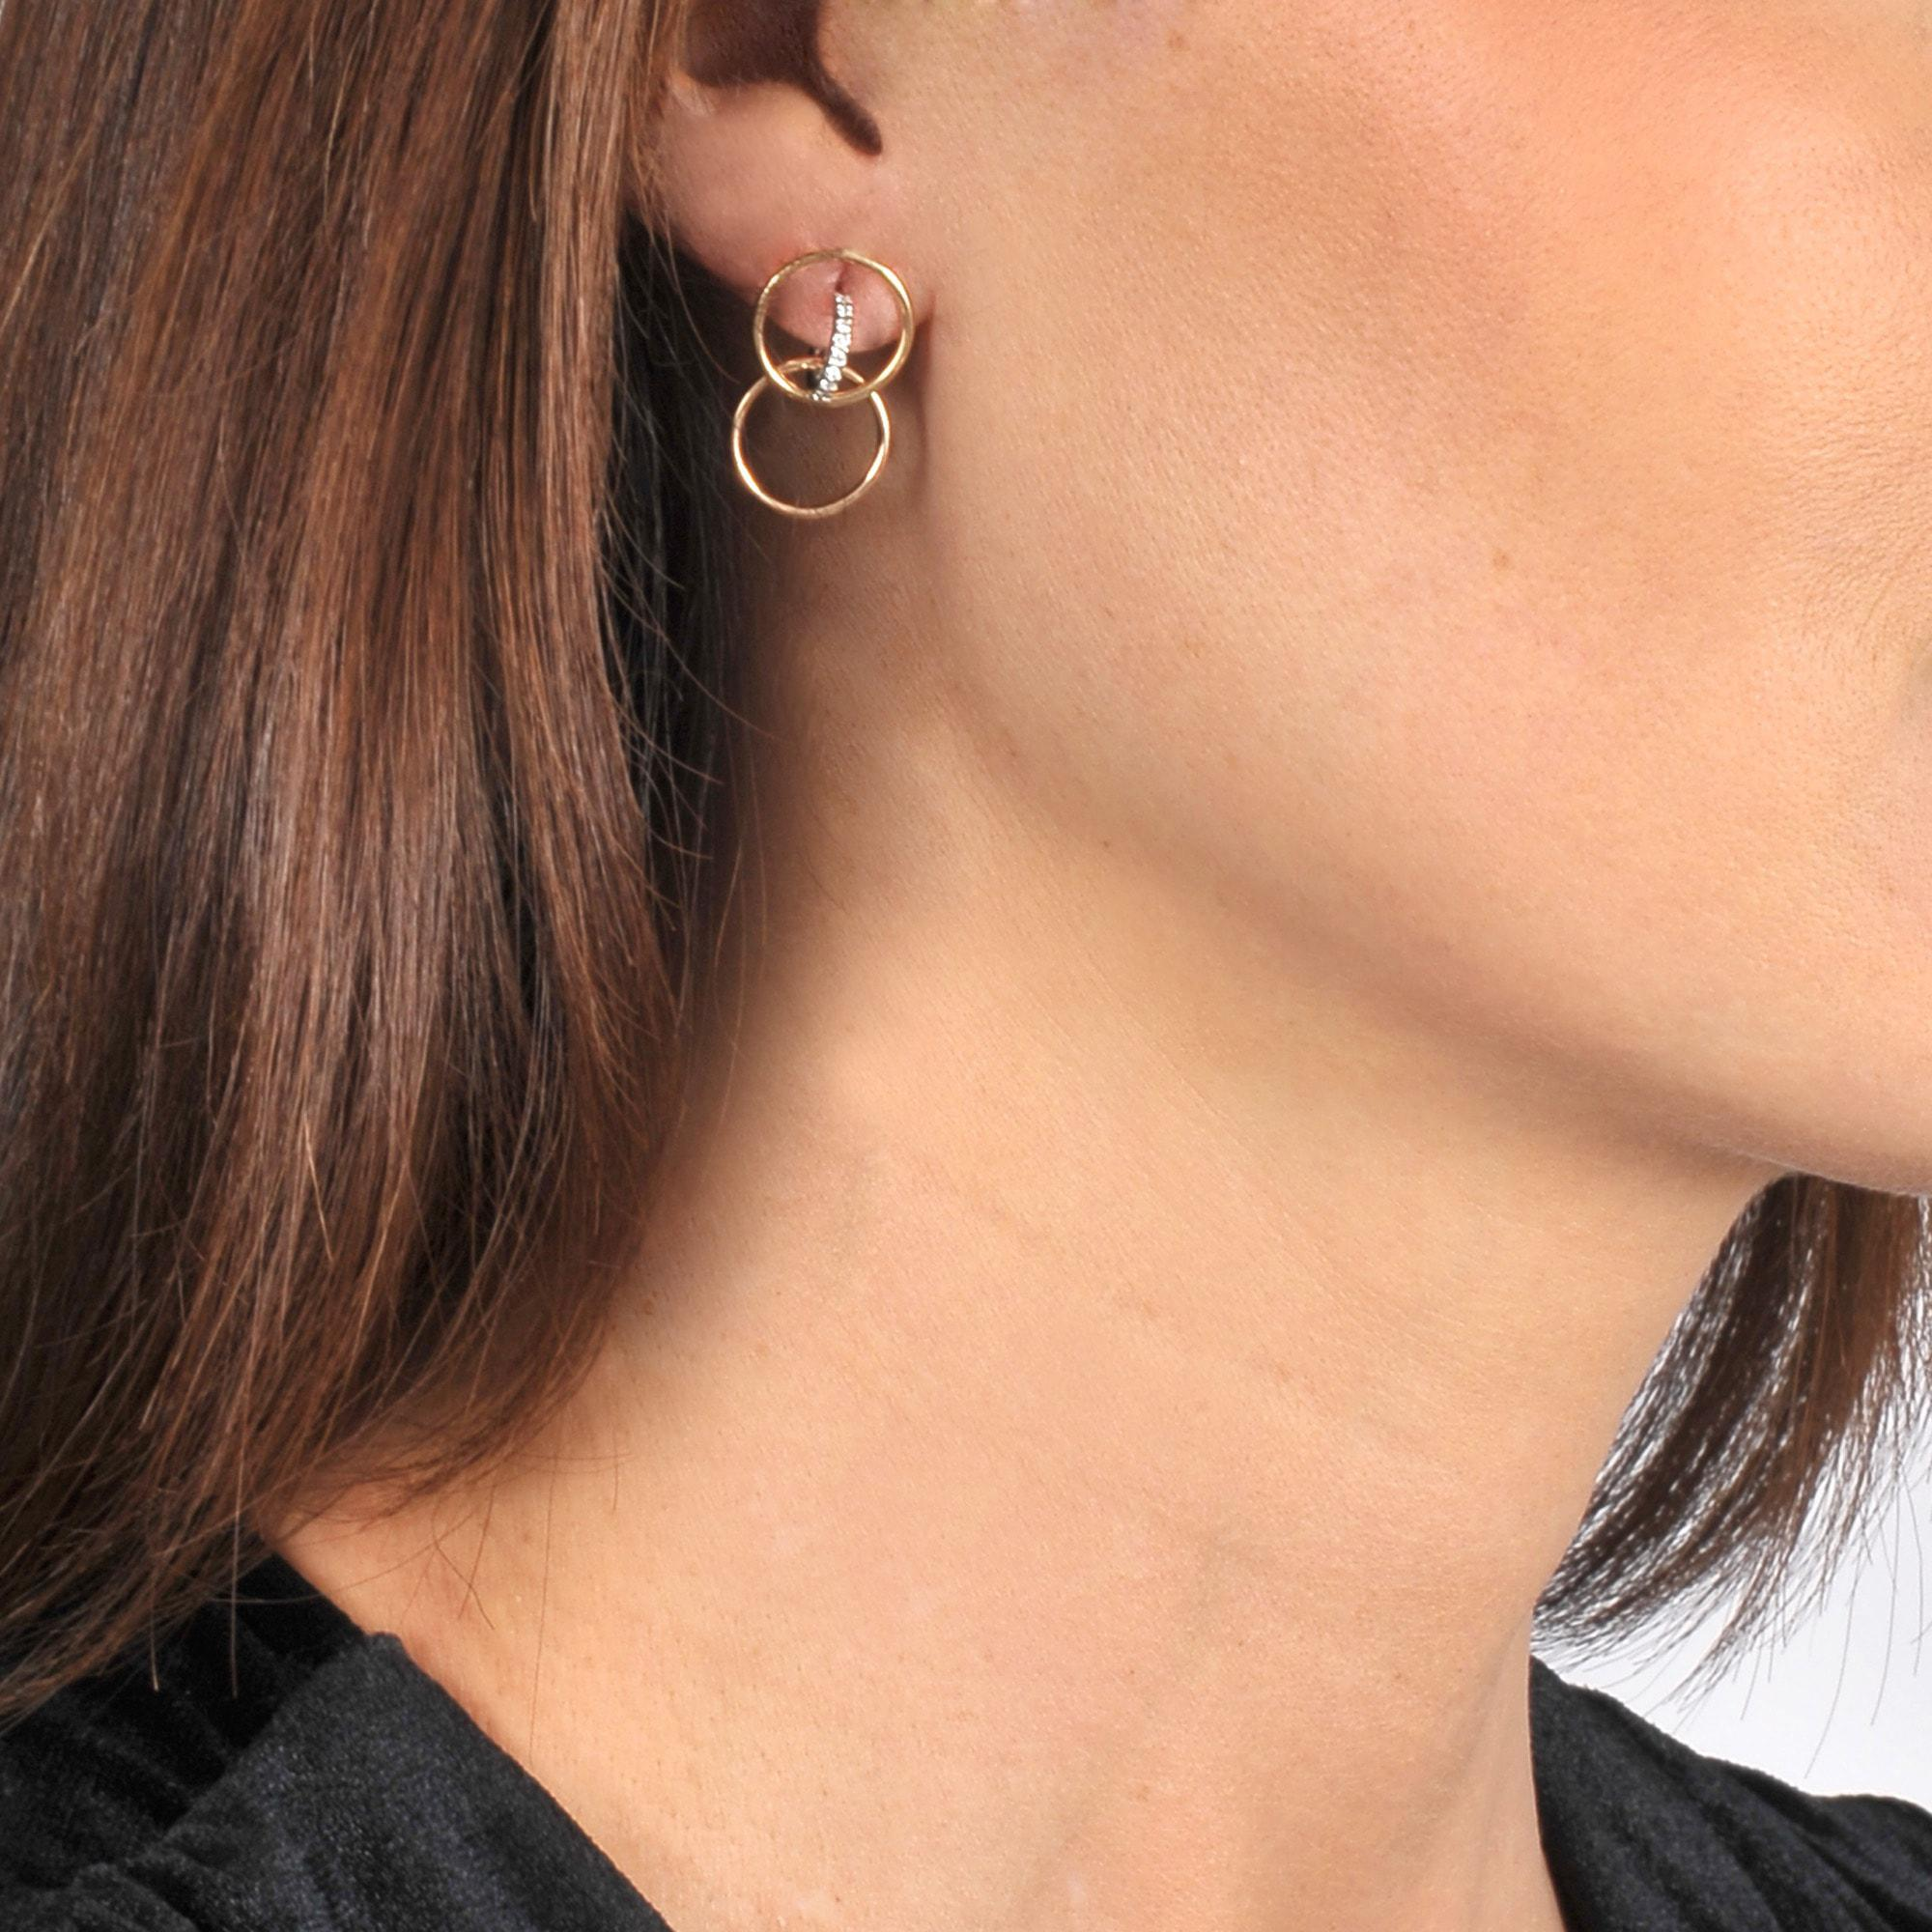 Galilea XS Earring in Yellow, Rose and White 18K Gold and Diamonds Charlotte Chesnais